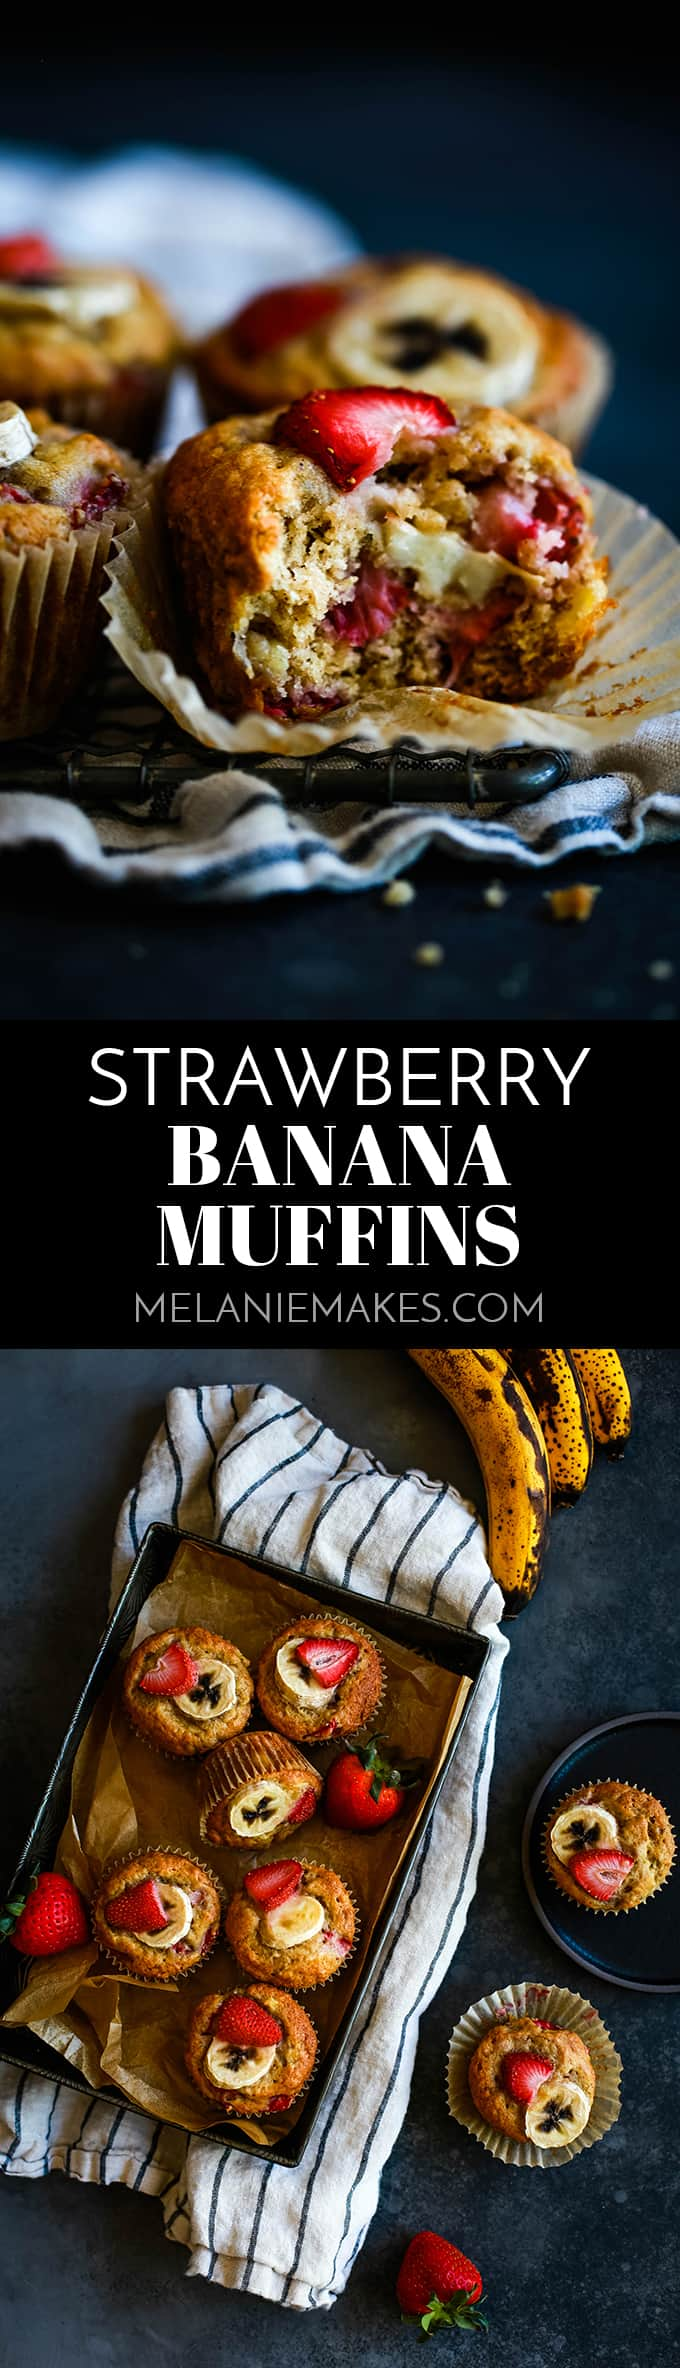 These fluffy Strawberry Banana Muffins take just 15 minutes to prepare and are bedazzled with large pieces of fresh, diced strawberries. #strawberry #banana #muffins #breakfastrecipes #brunch #easyrecipe